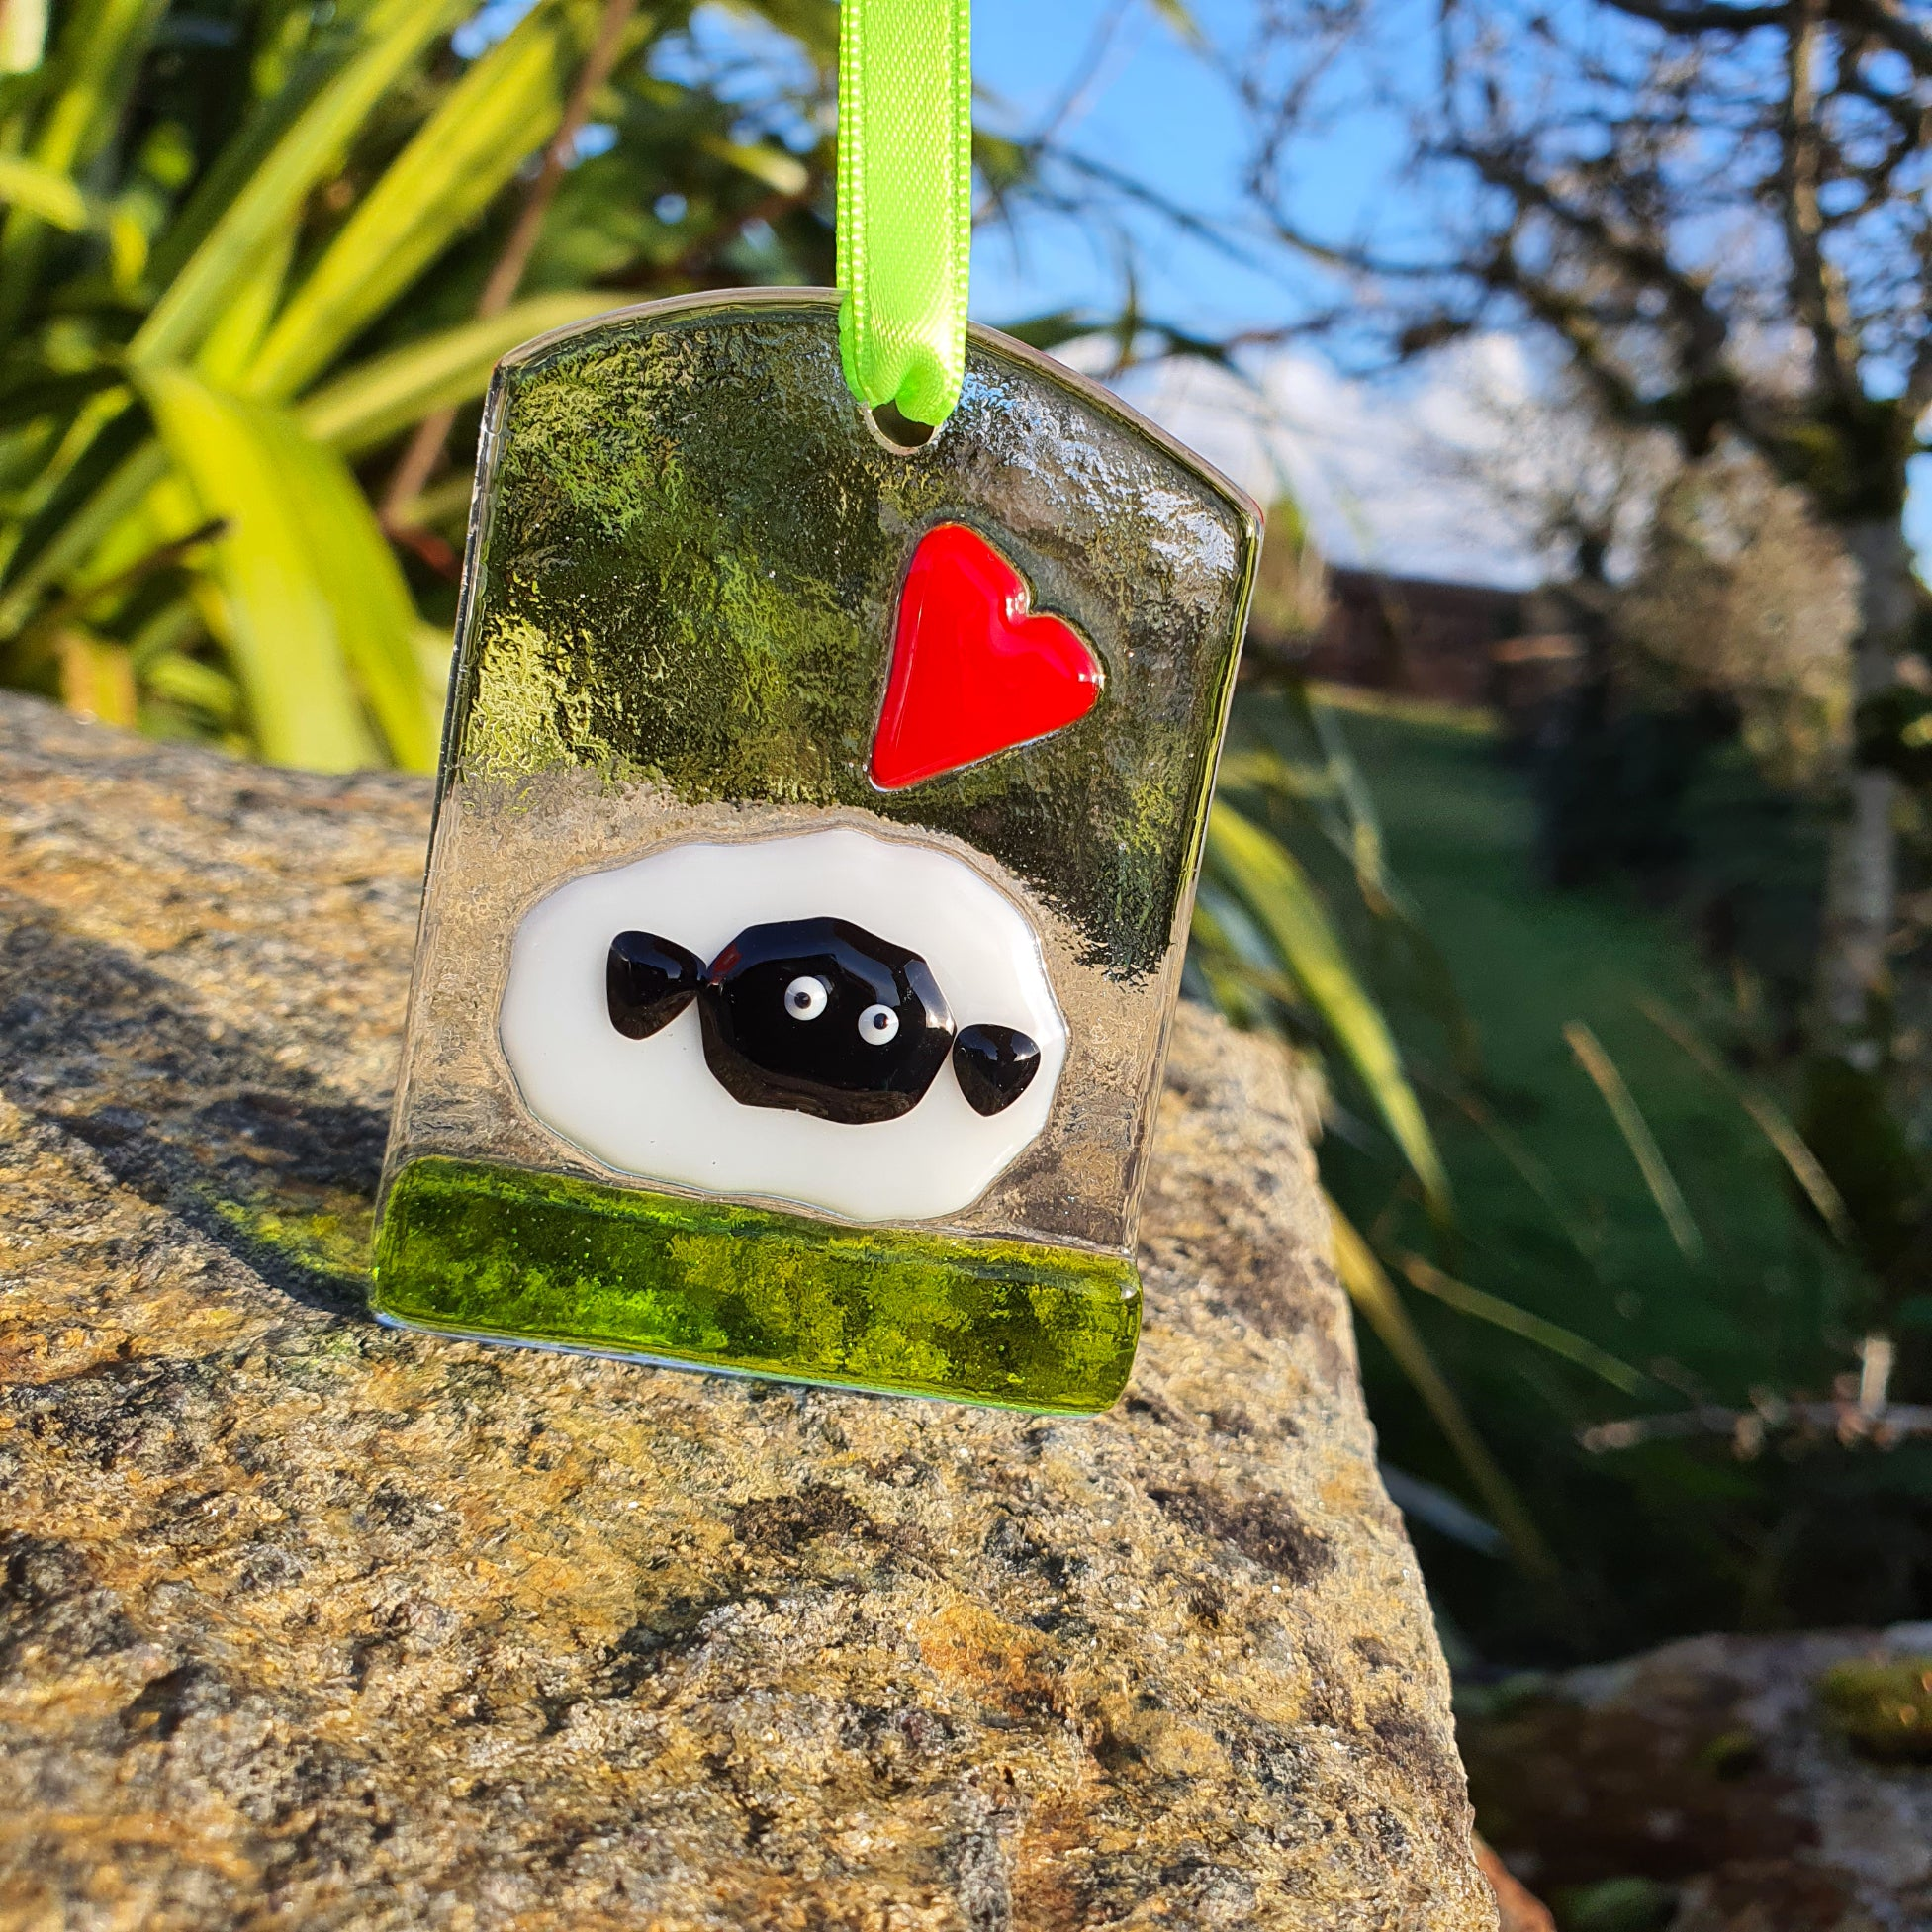 A fused glass decoration featuring a fluffy sheep and a red heart, handmade by Connemara Blue